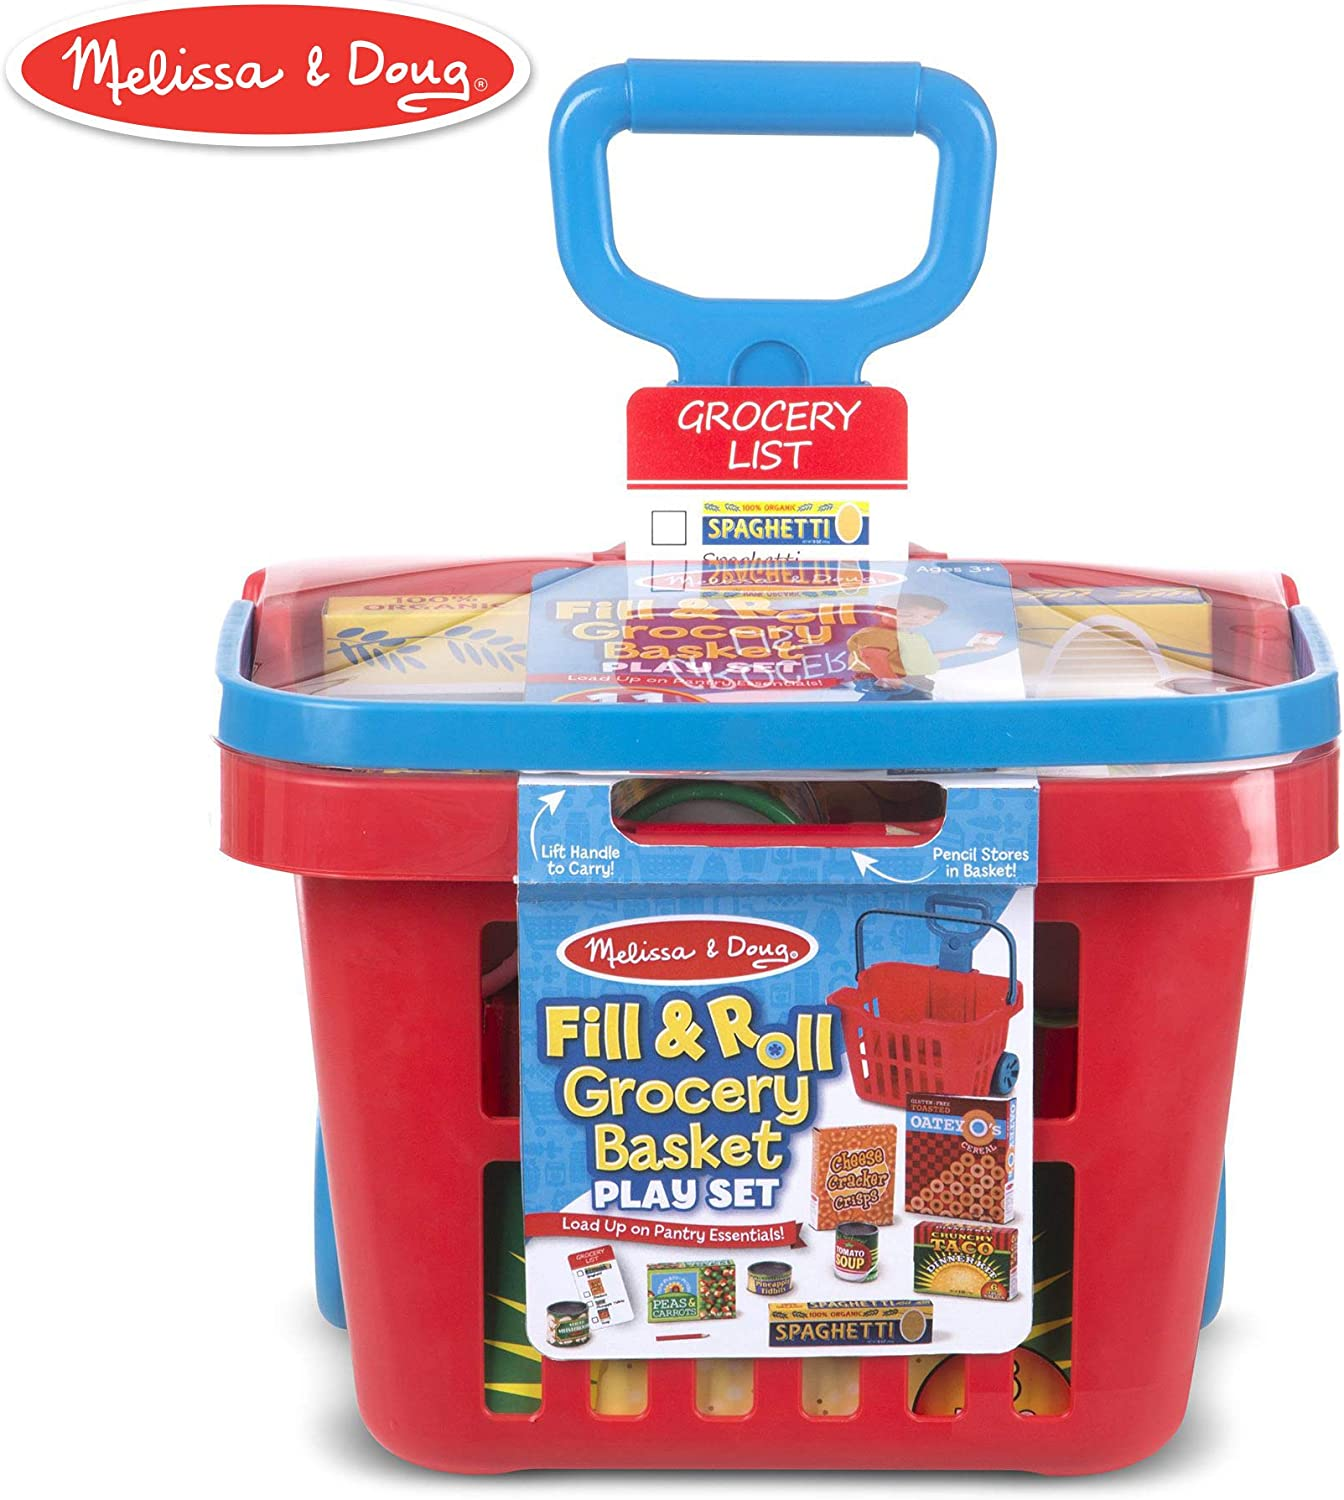 "Melissa & Doug Fill & Roll Grocery Basket Play Set (Play Food, Durable Construction, 11 Pieces, 22"" H x 10.25"" W x 11.75"" L)"